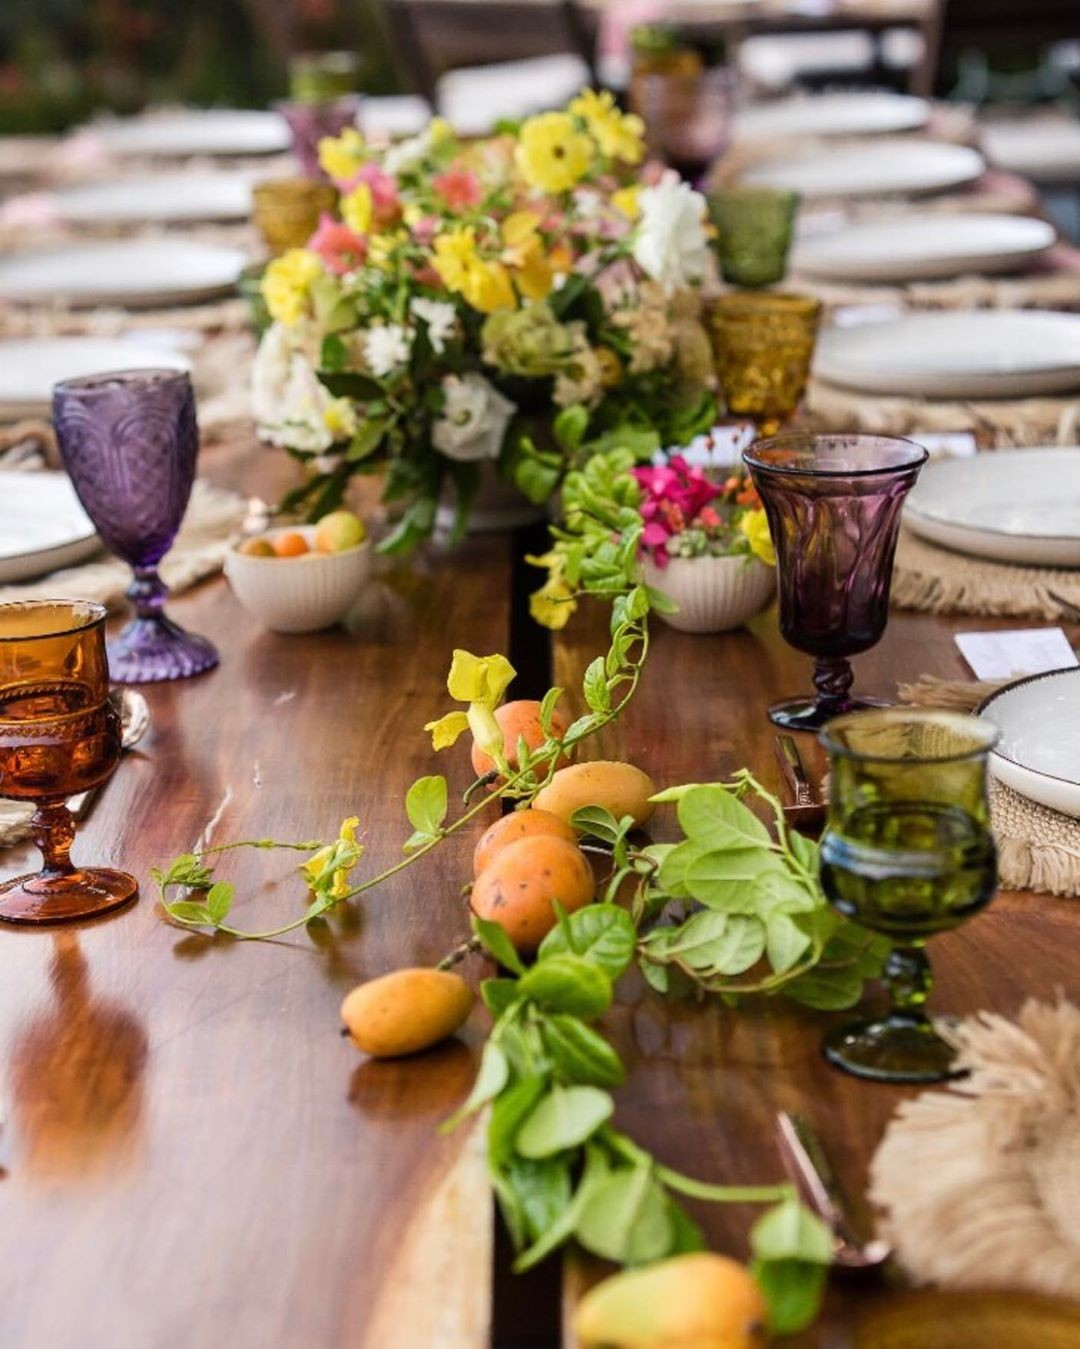 Love mixing flowers, fruits, textures and colors, still swooning over this 💕